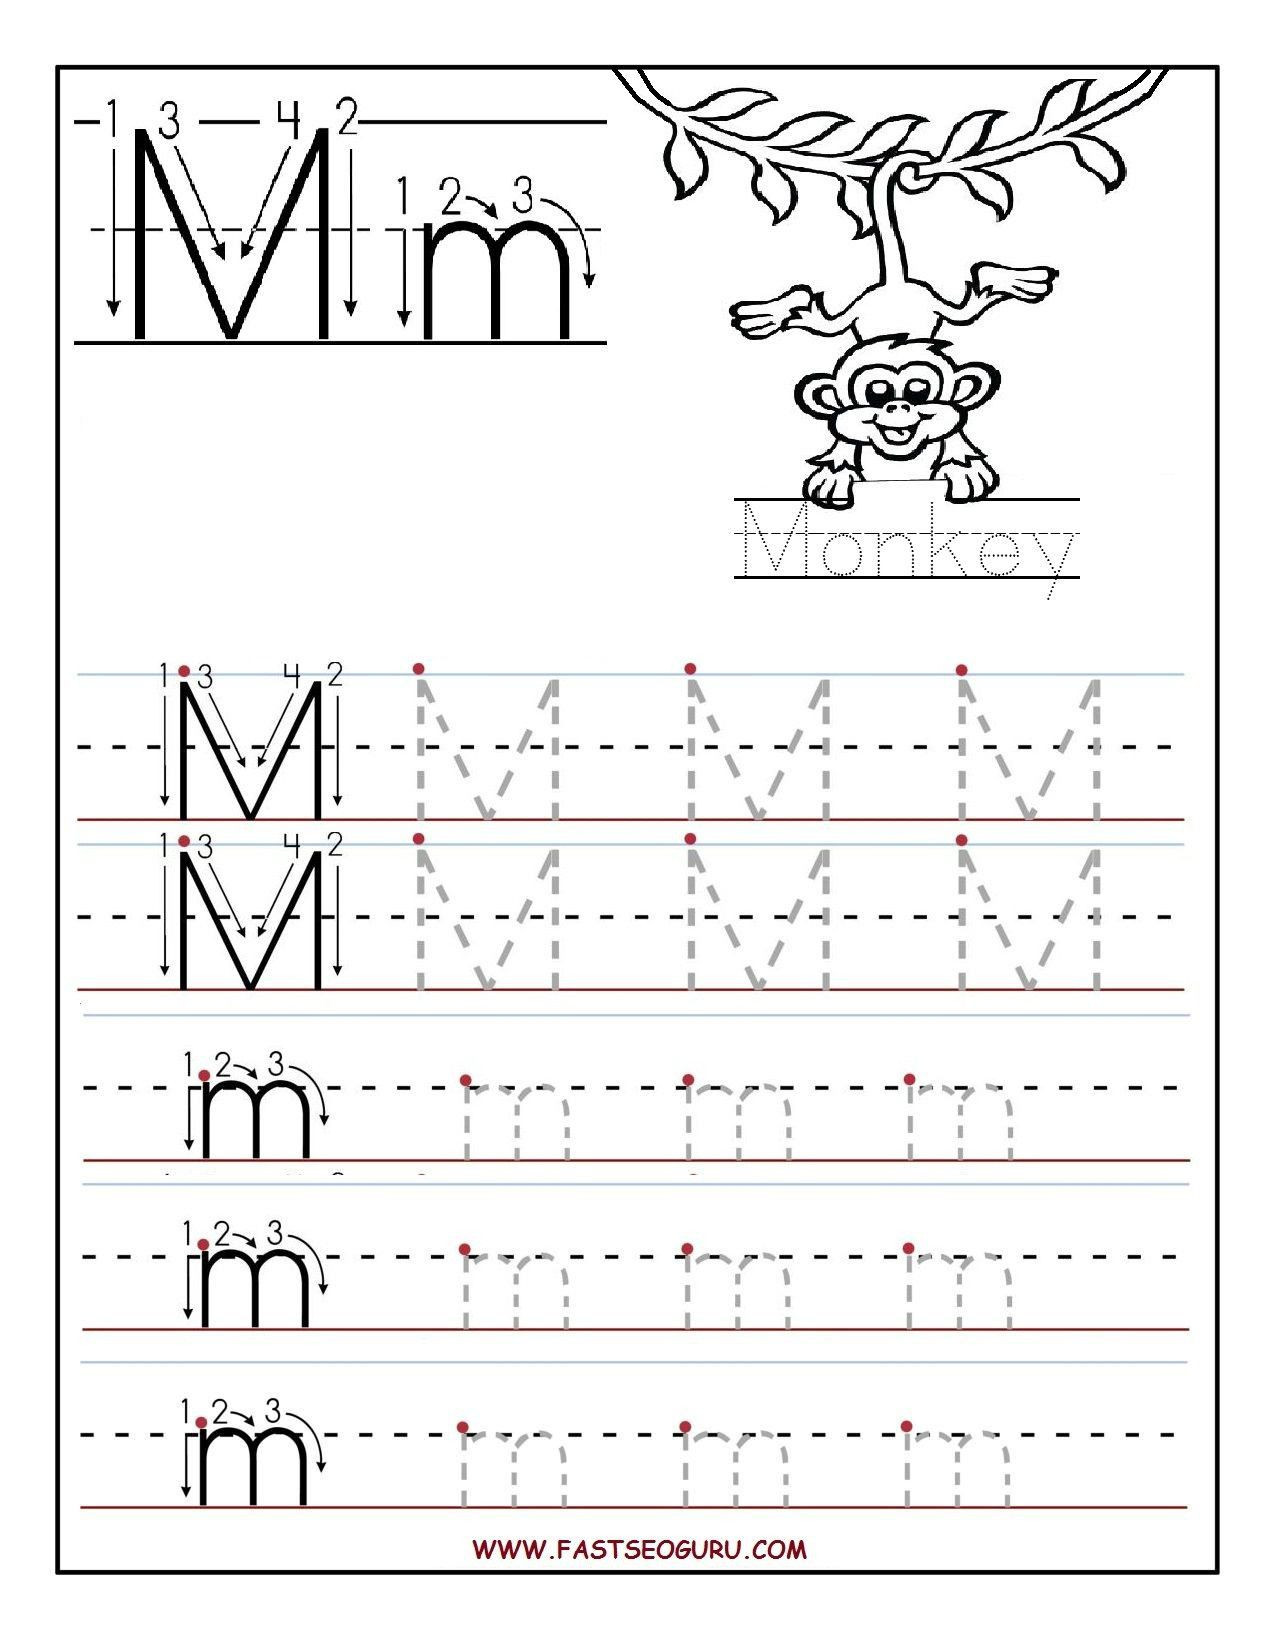 Letter M Worksheets for Preschoolers Pin On Kindergarten